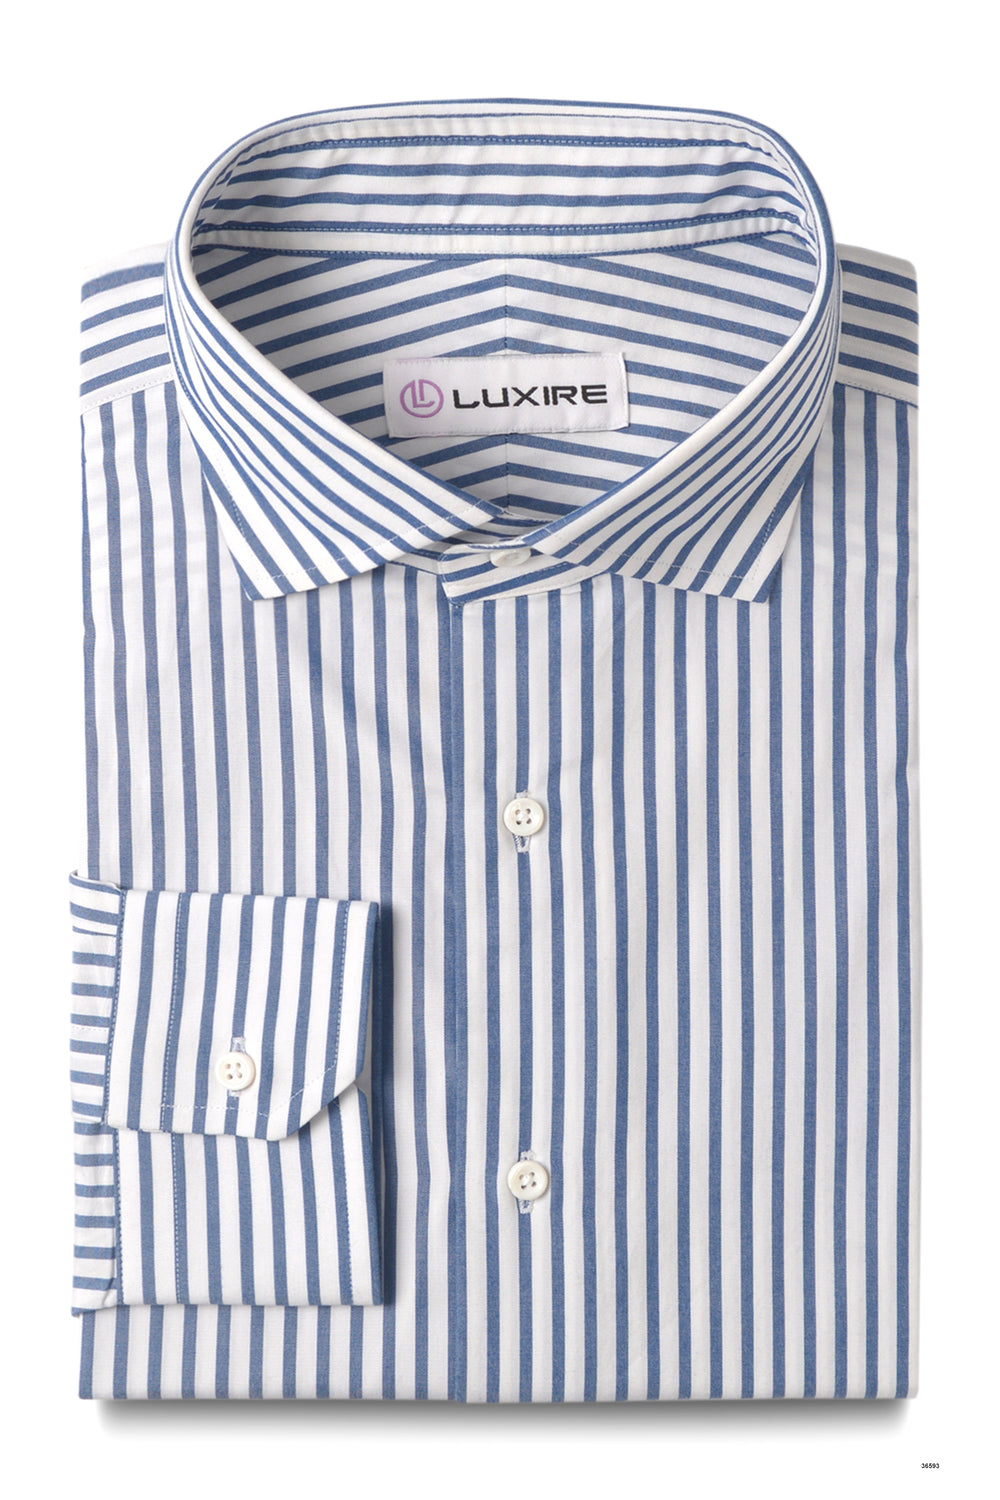 Friday Shirt: Blue Pencil Stripes On White (228922789)